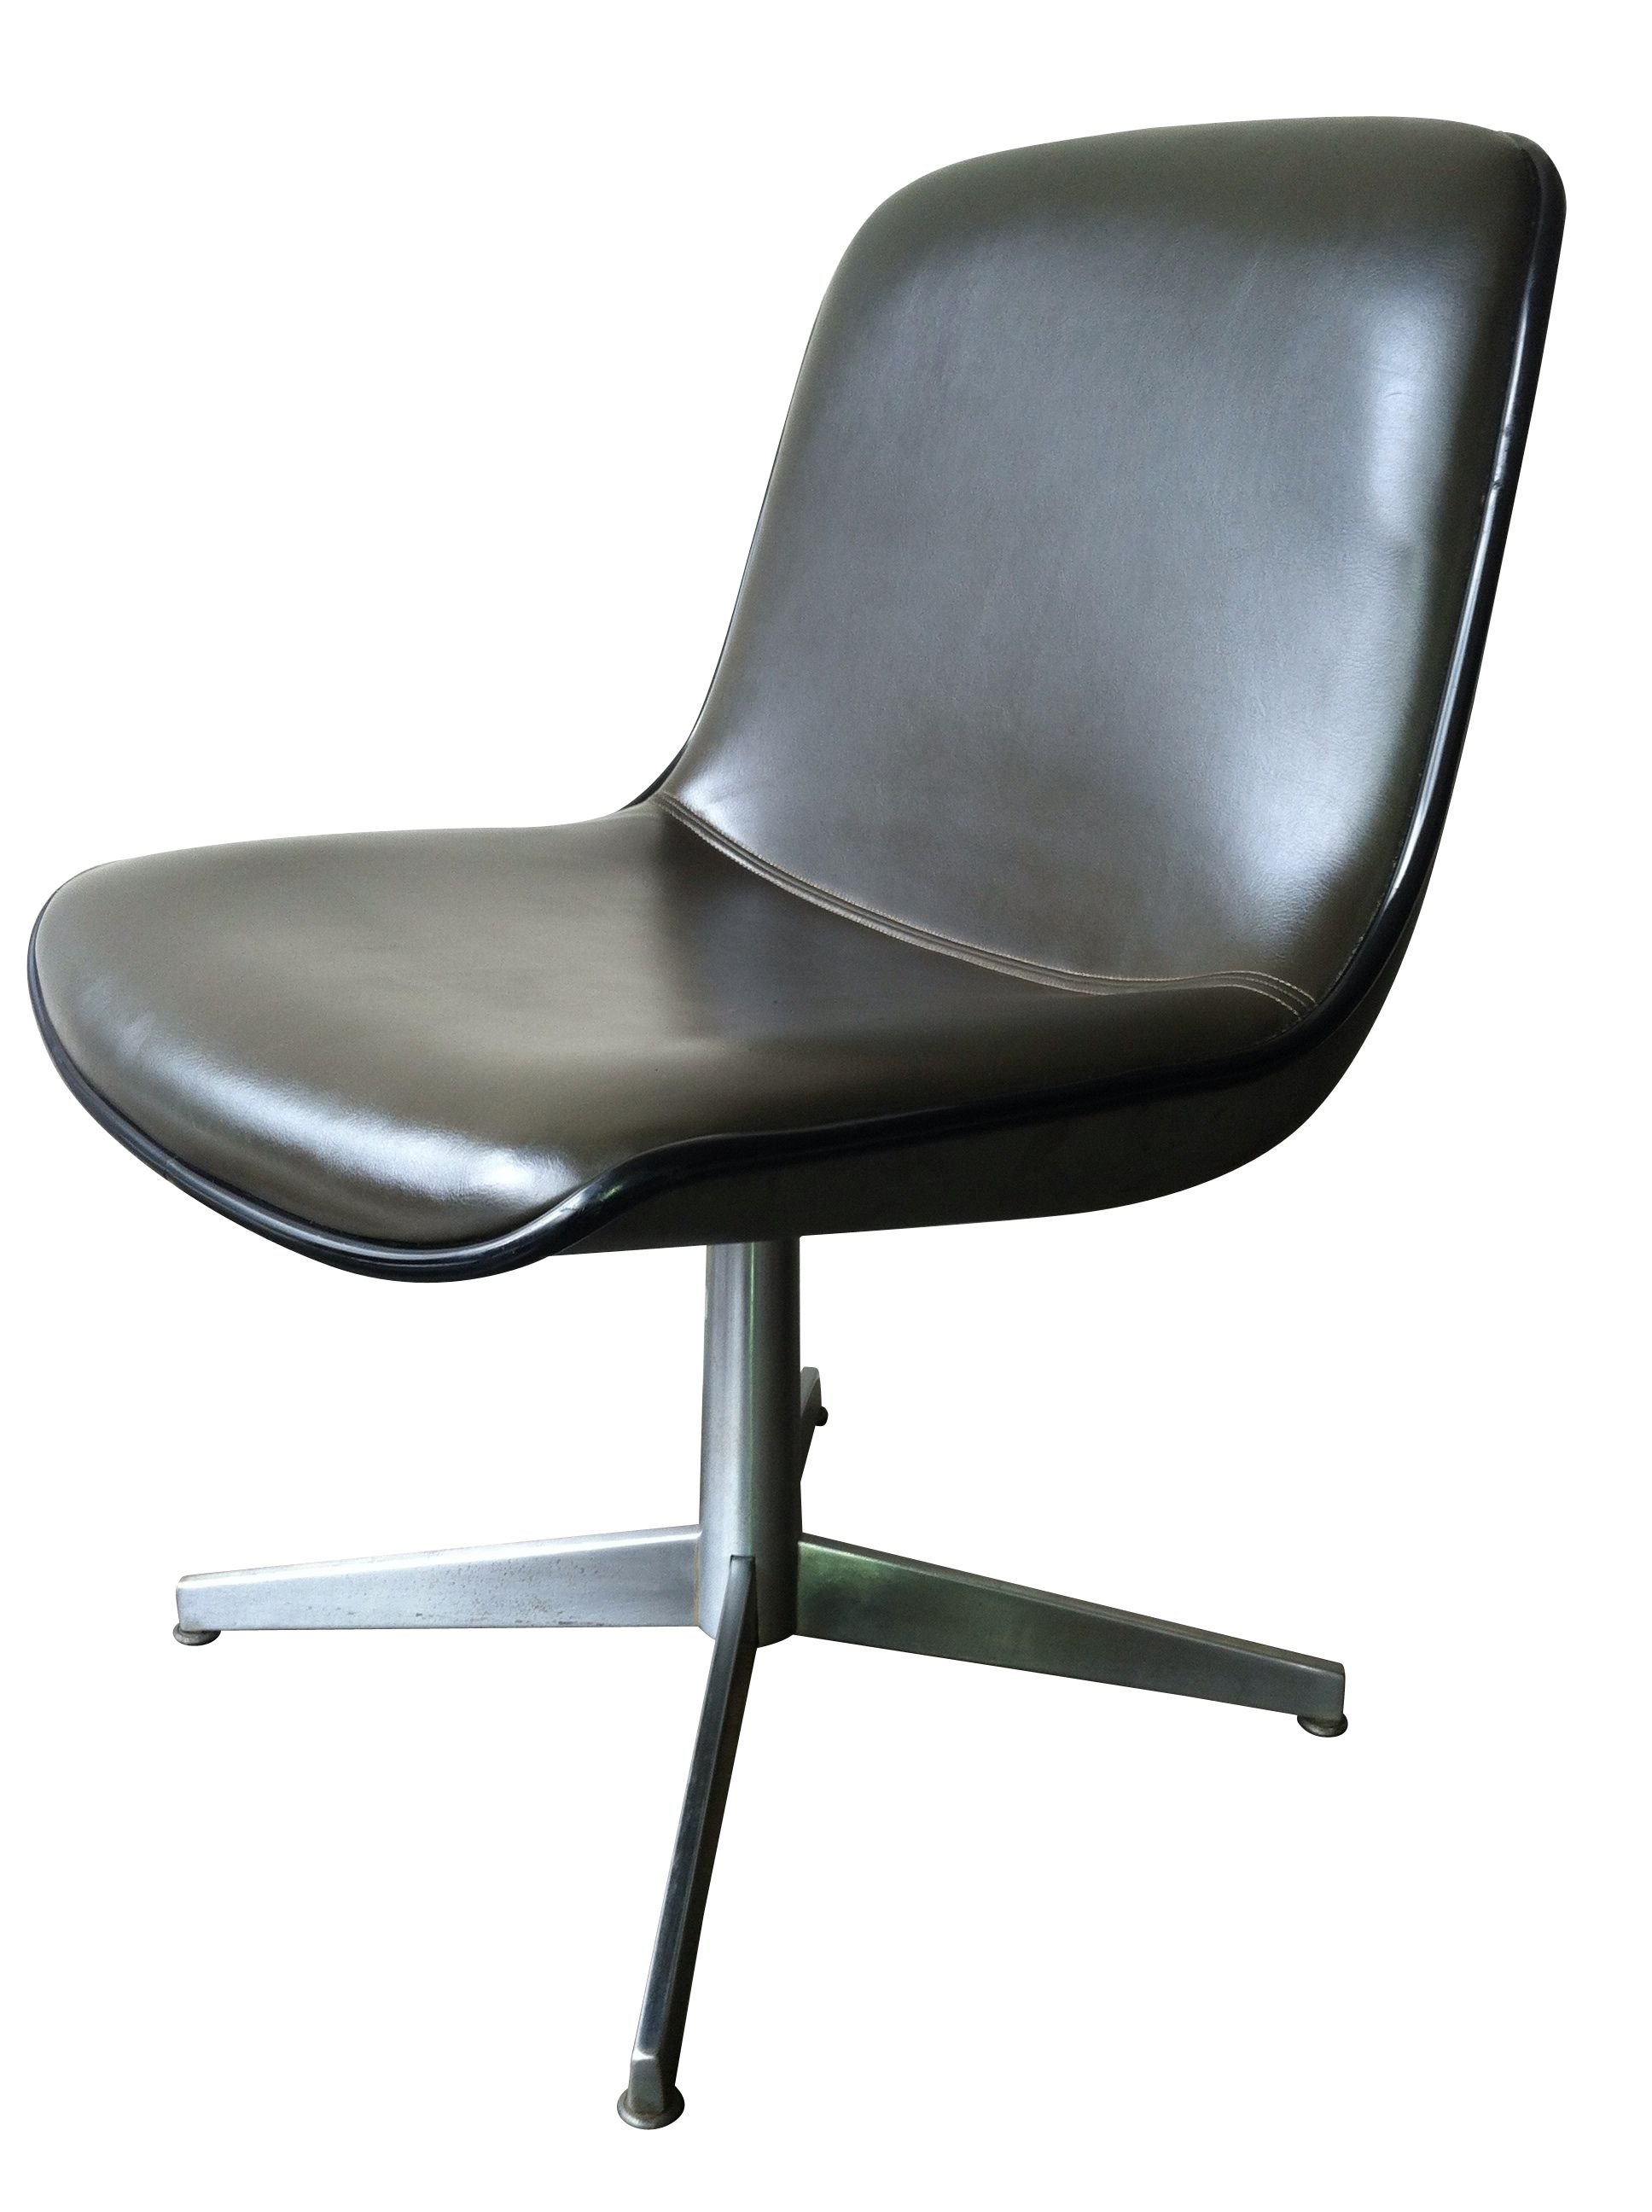 Vintage Mod Leather Pedestal Chair   Omero Home